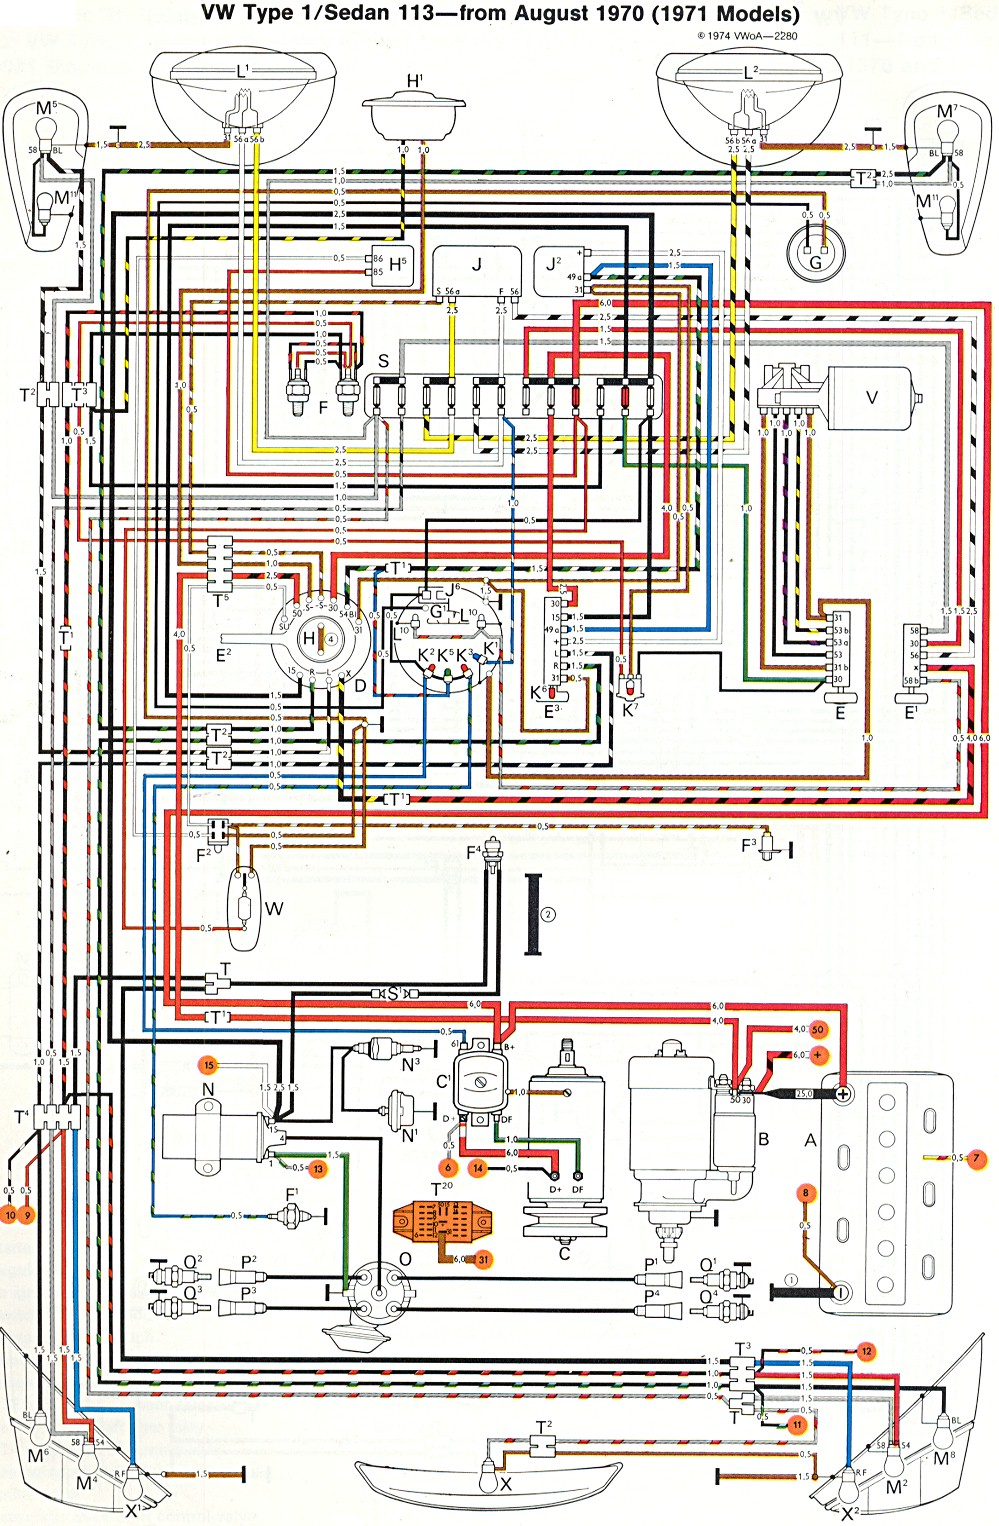 bug_super_71 1971 super beetle wiring diagram thegoldenbug com 1970 vw bug wiring diagram at arjmand.co